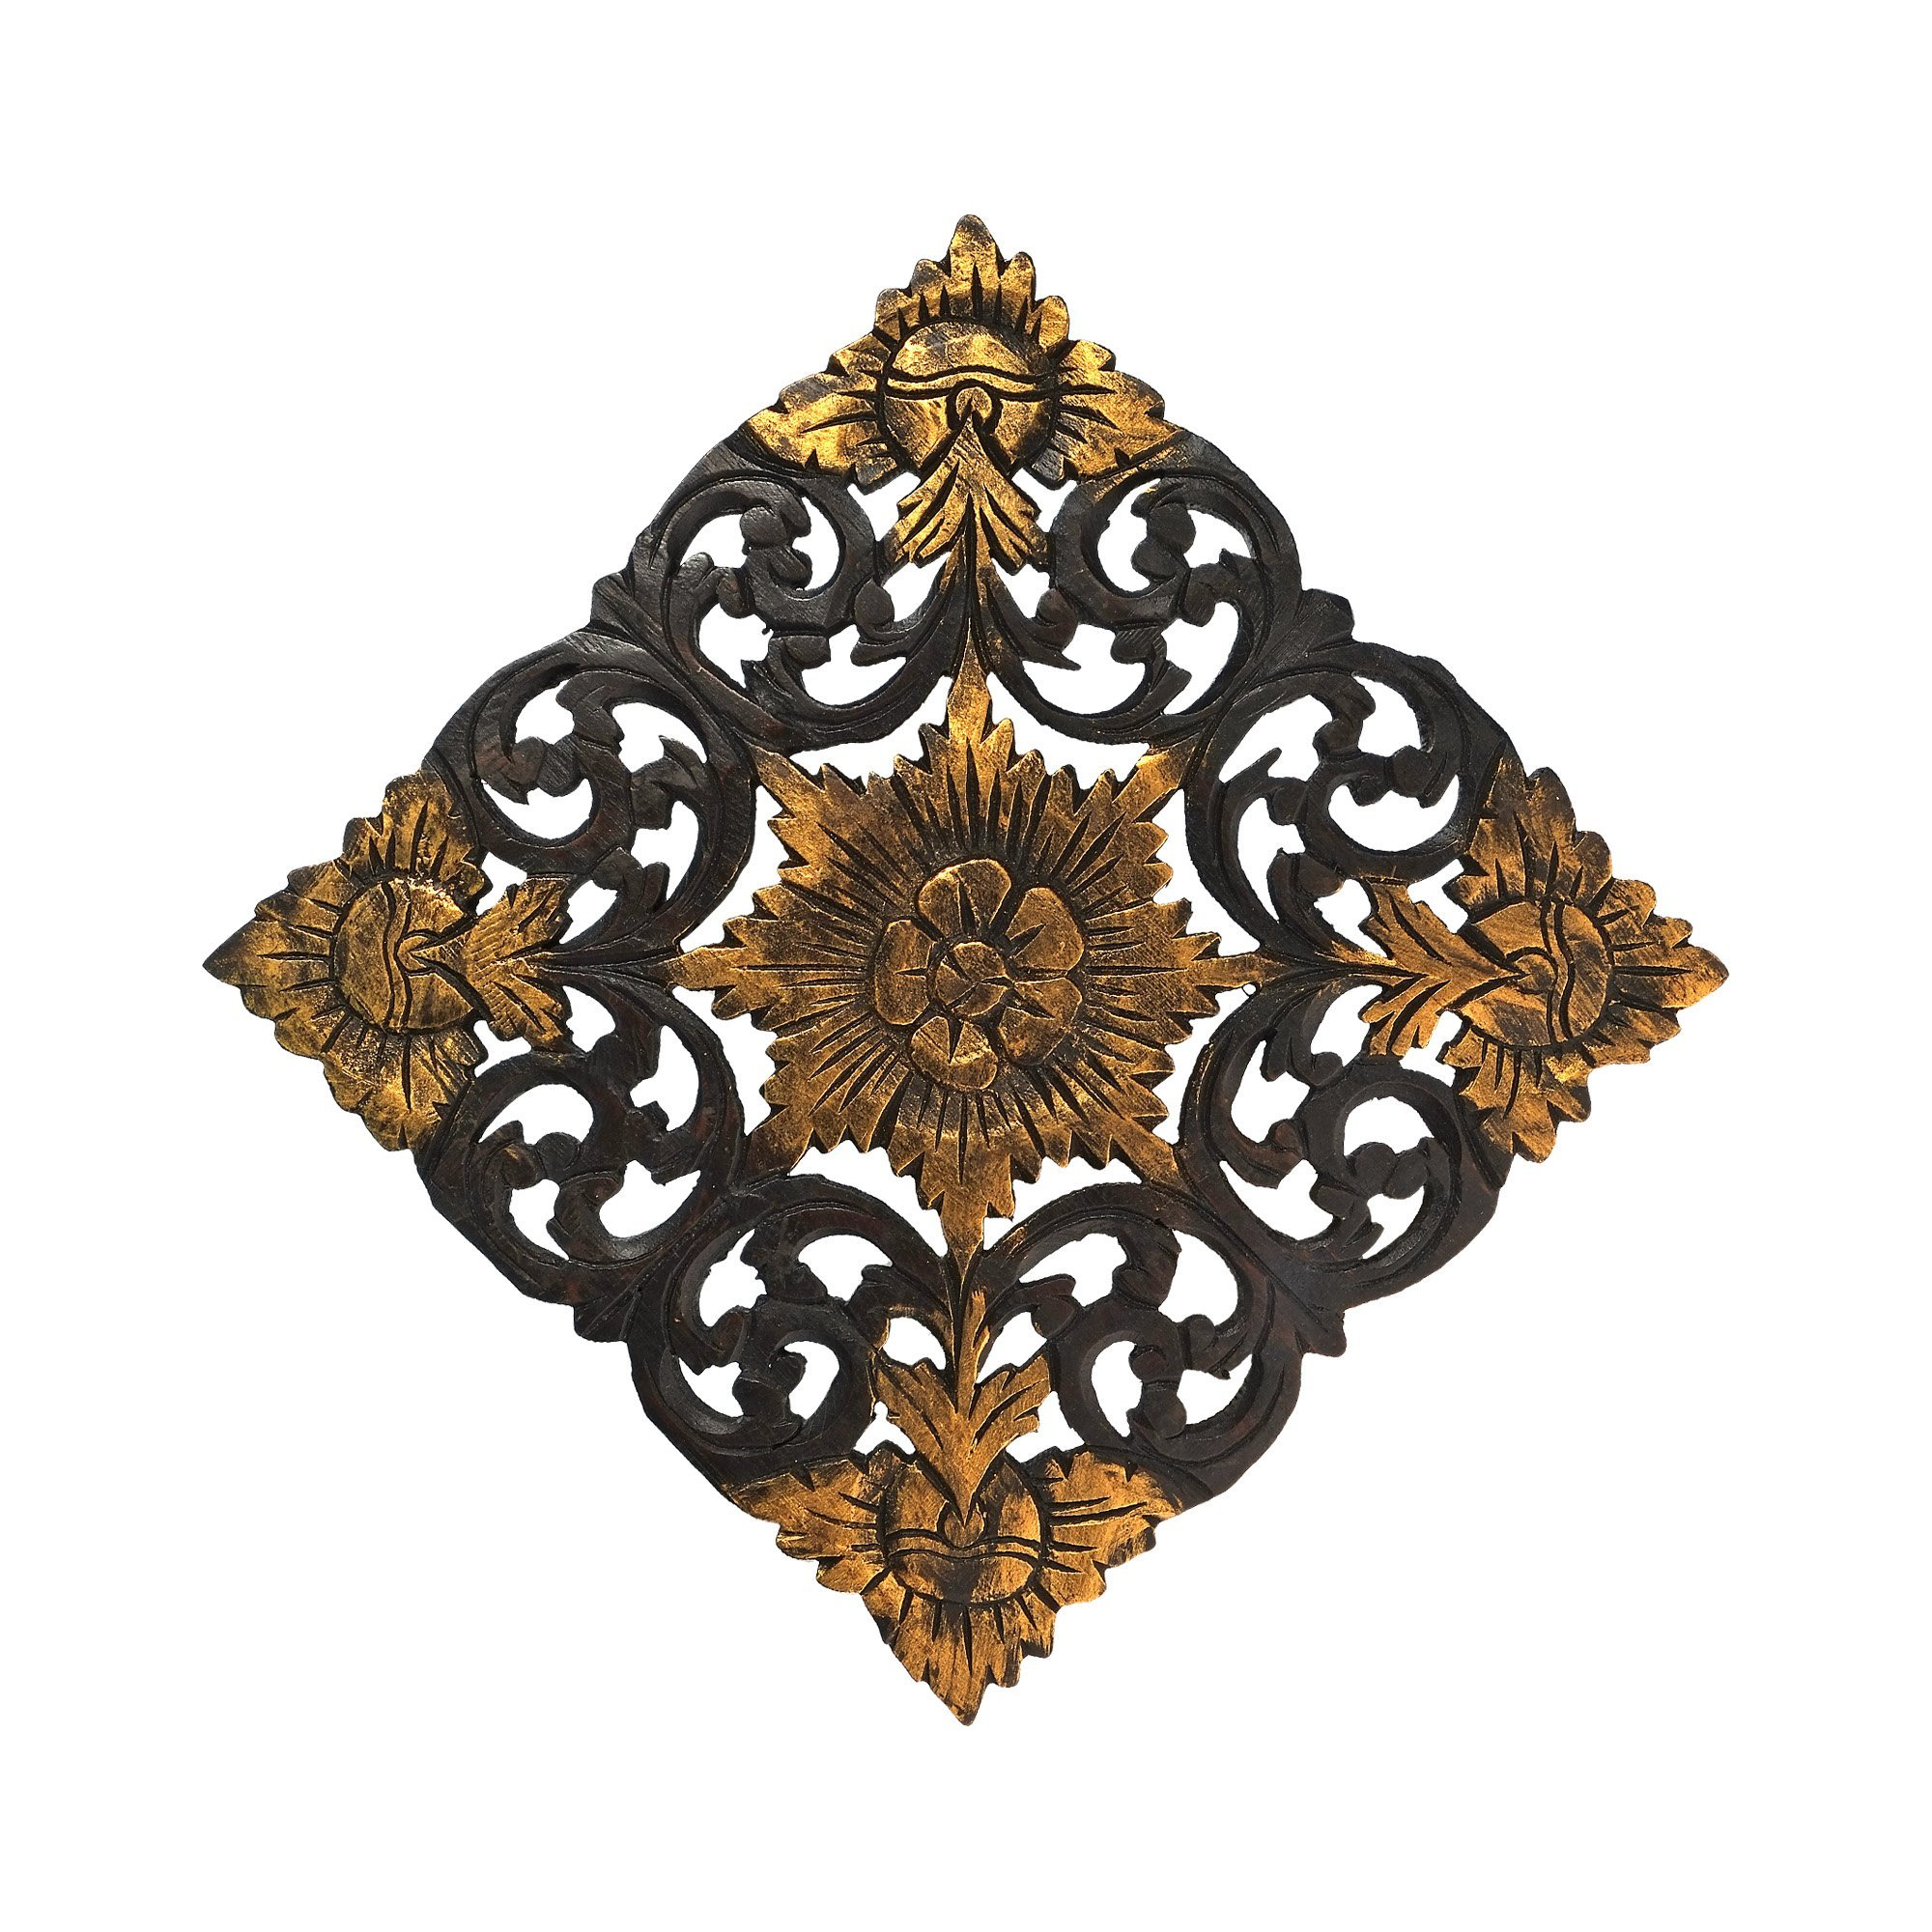 AeraVida Thai Lotus Flower 2 Tone Hand Carved Relief Panel Teak Wood Wall Art by AeraVida